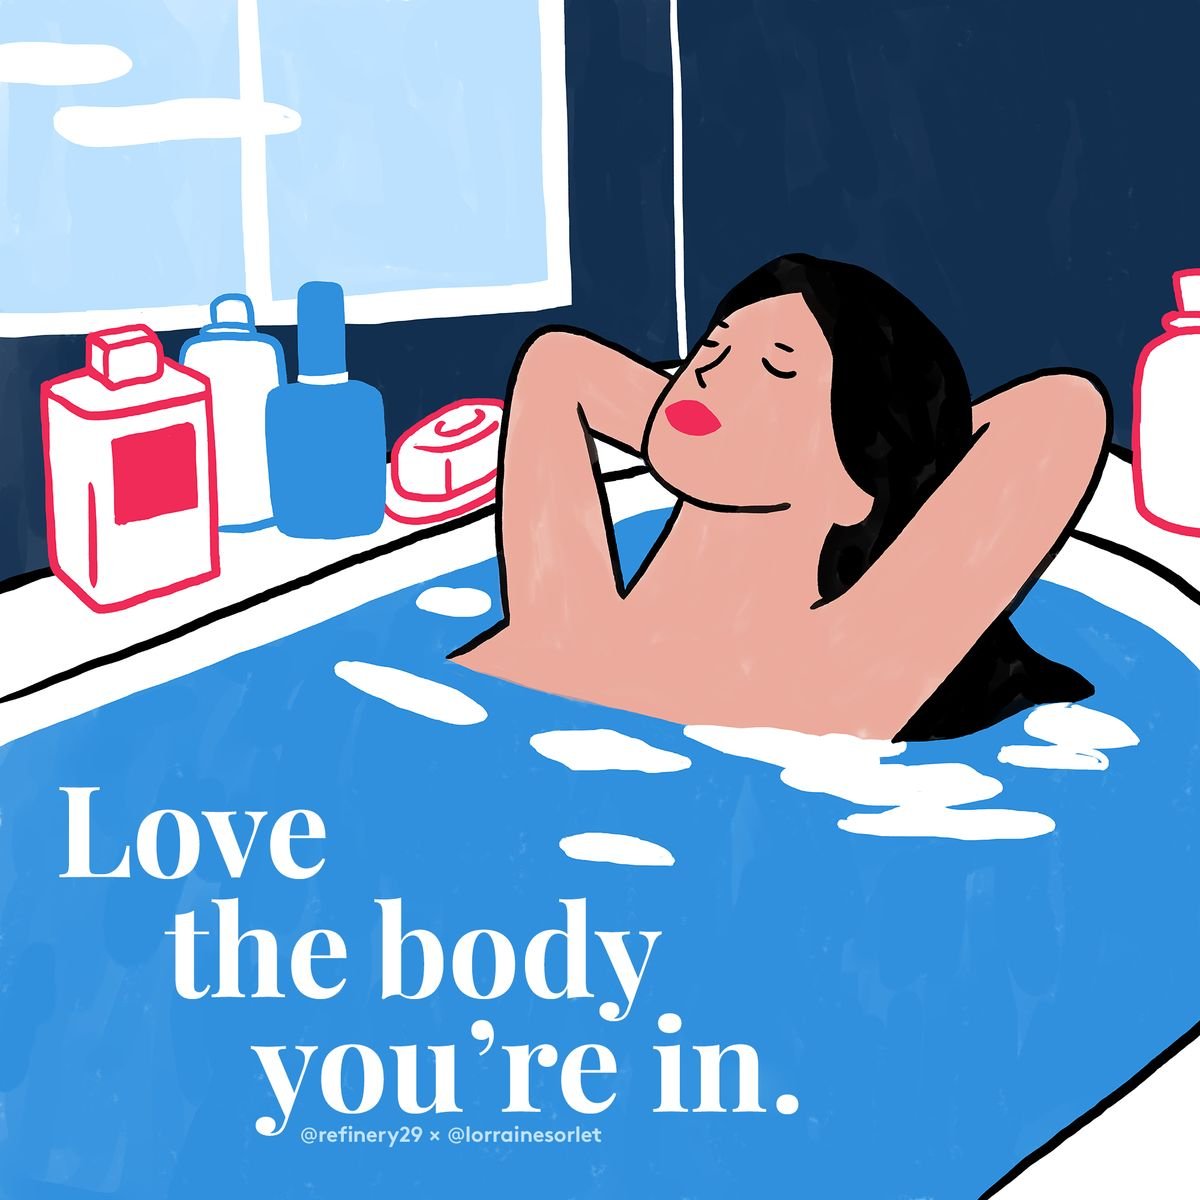 Garance-Lorraine-Sorlet-Refinery-29-love-your-body